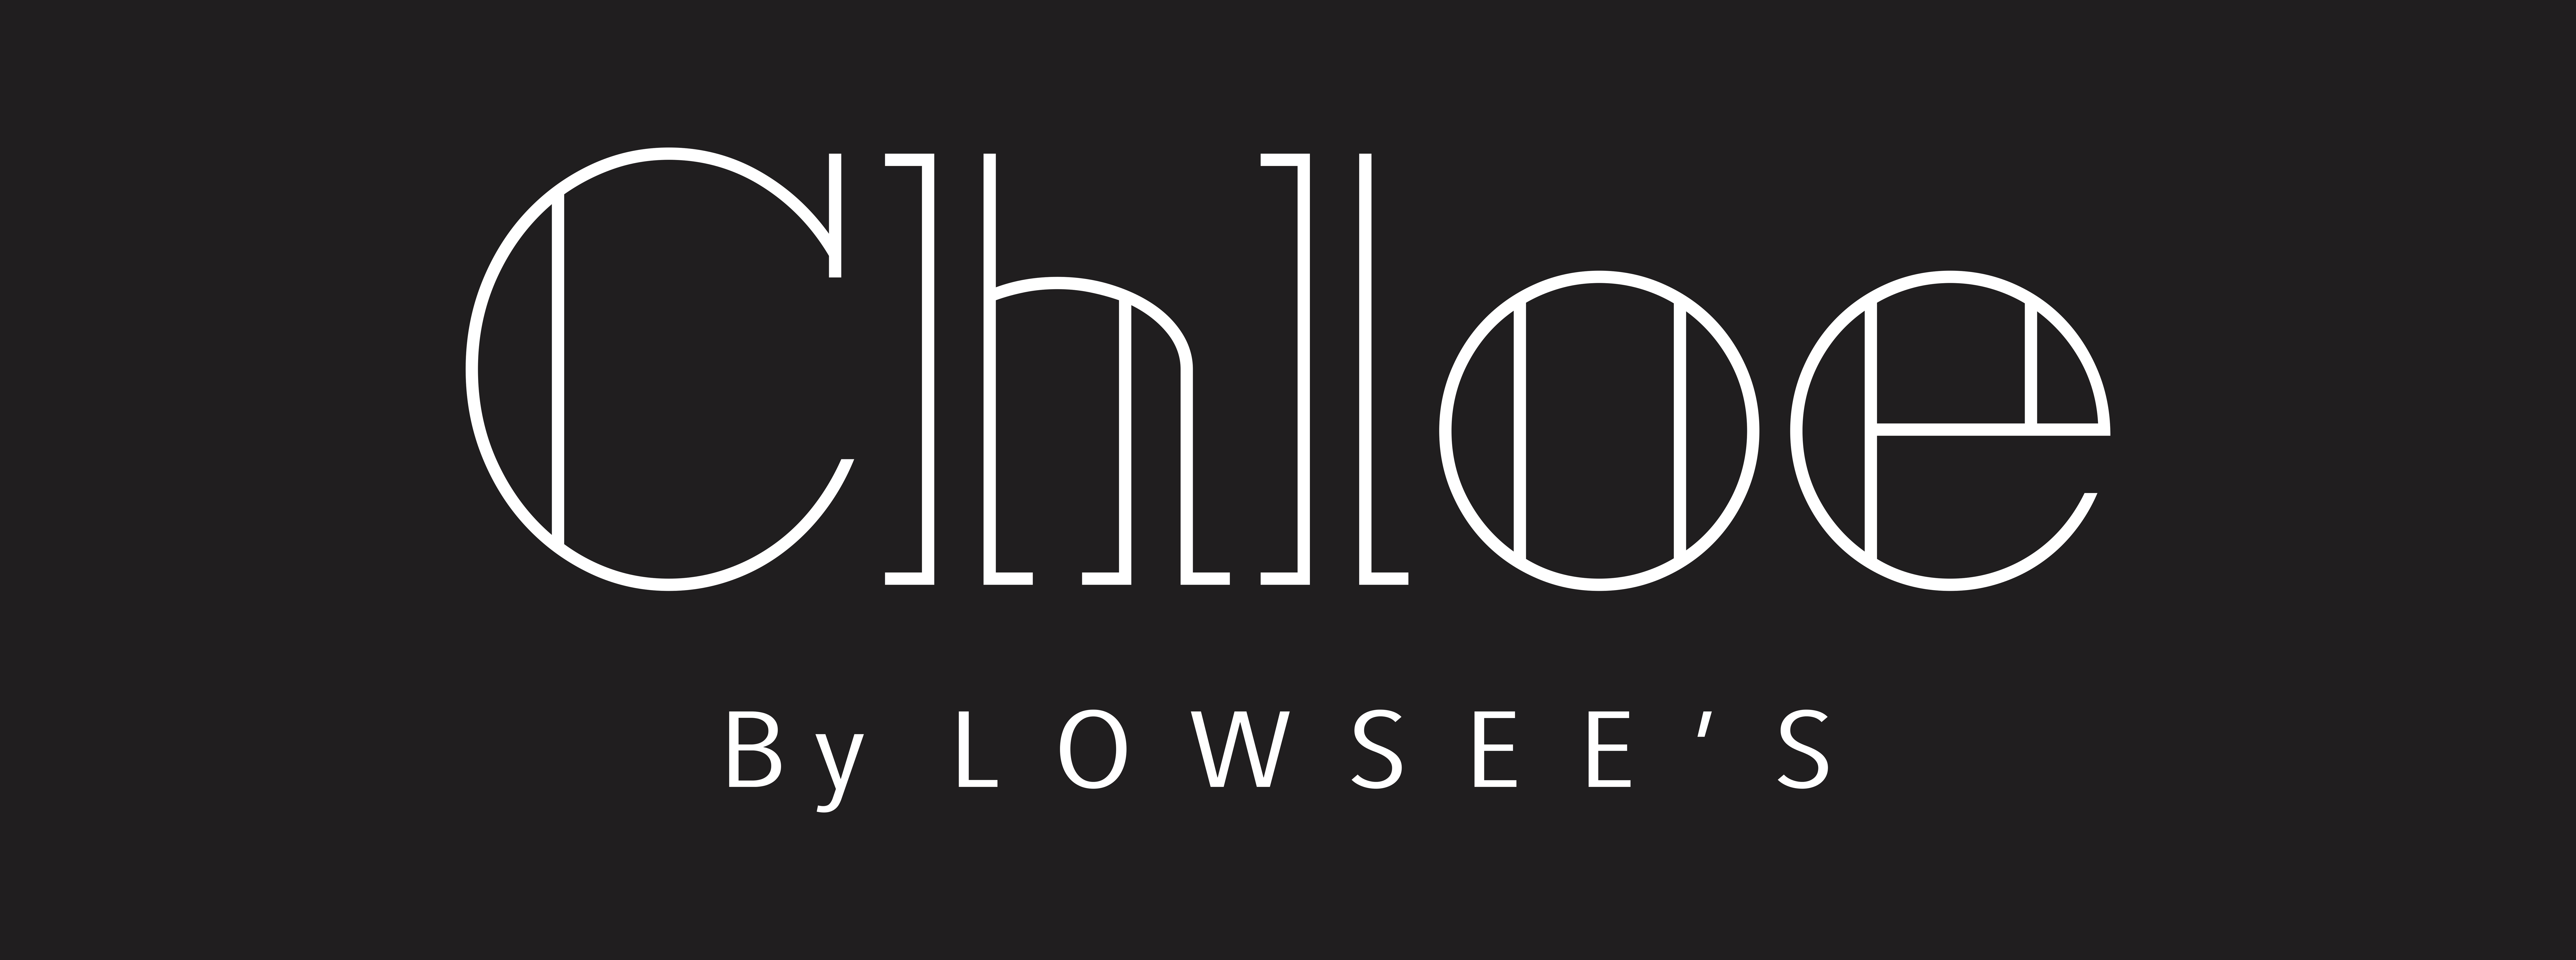 Chloe by lowsee's